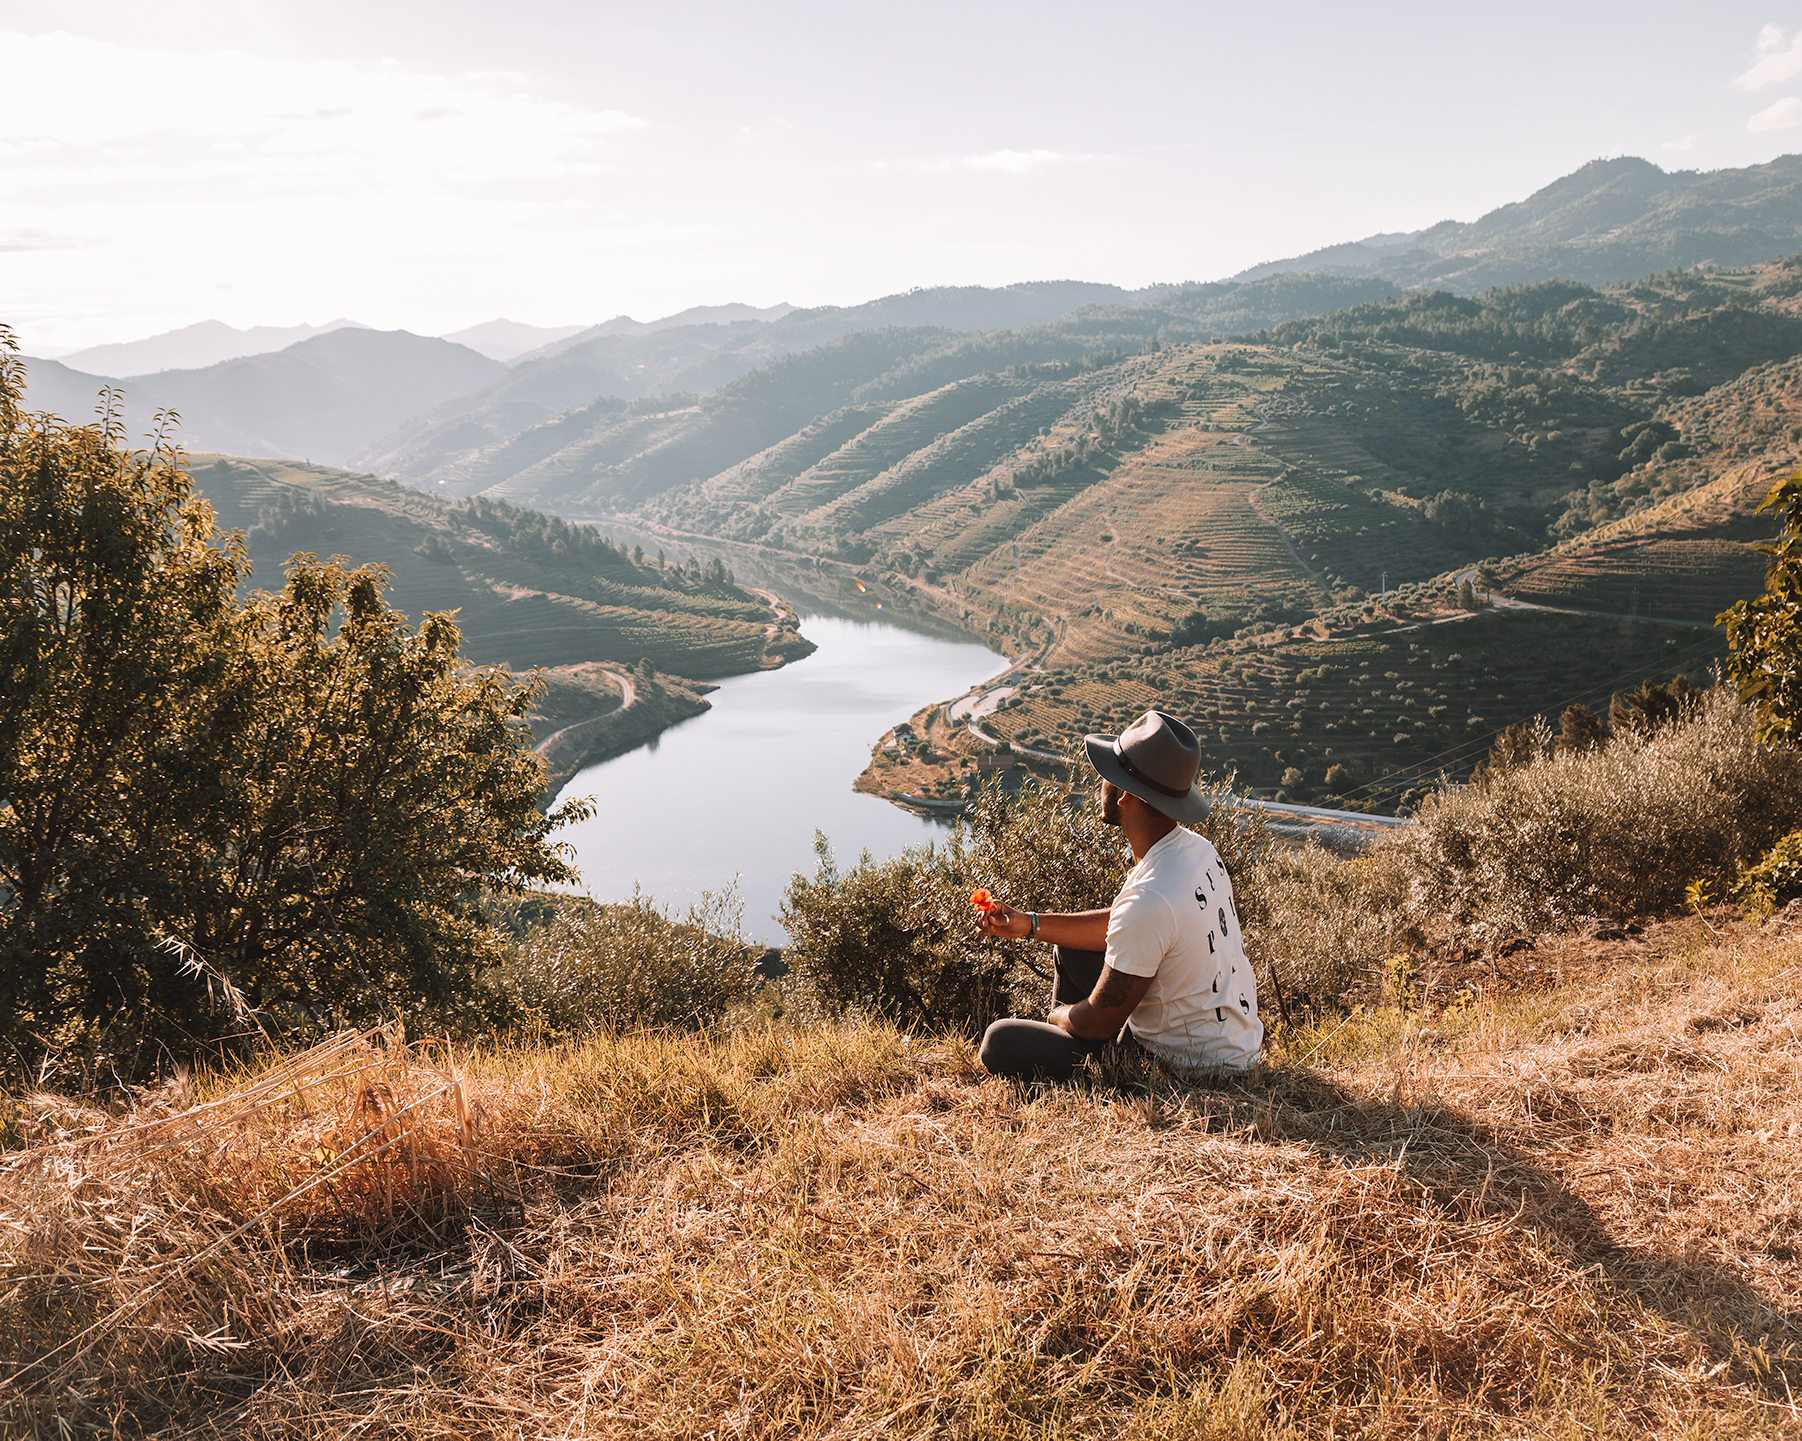 north road trip with portugal by van douro valley river landscape nature freeoversea couple